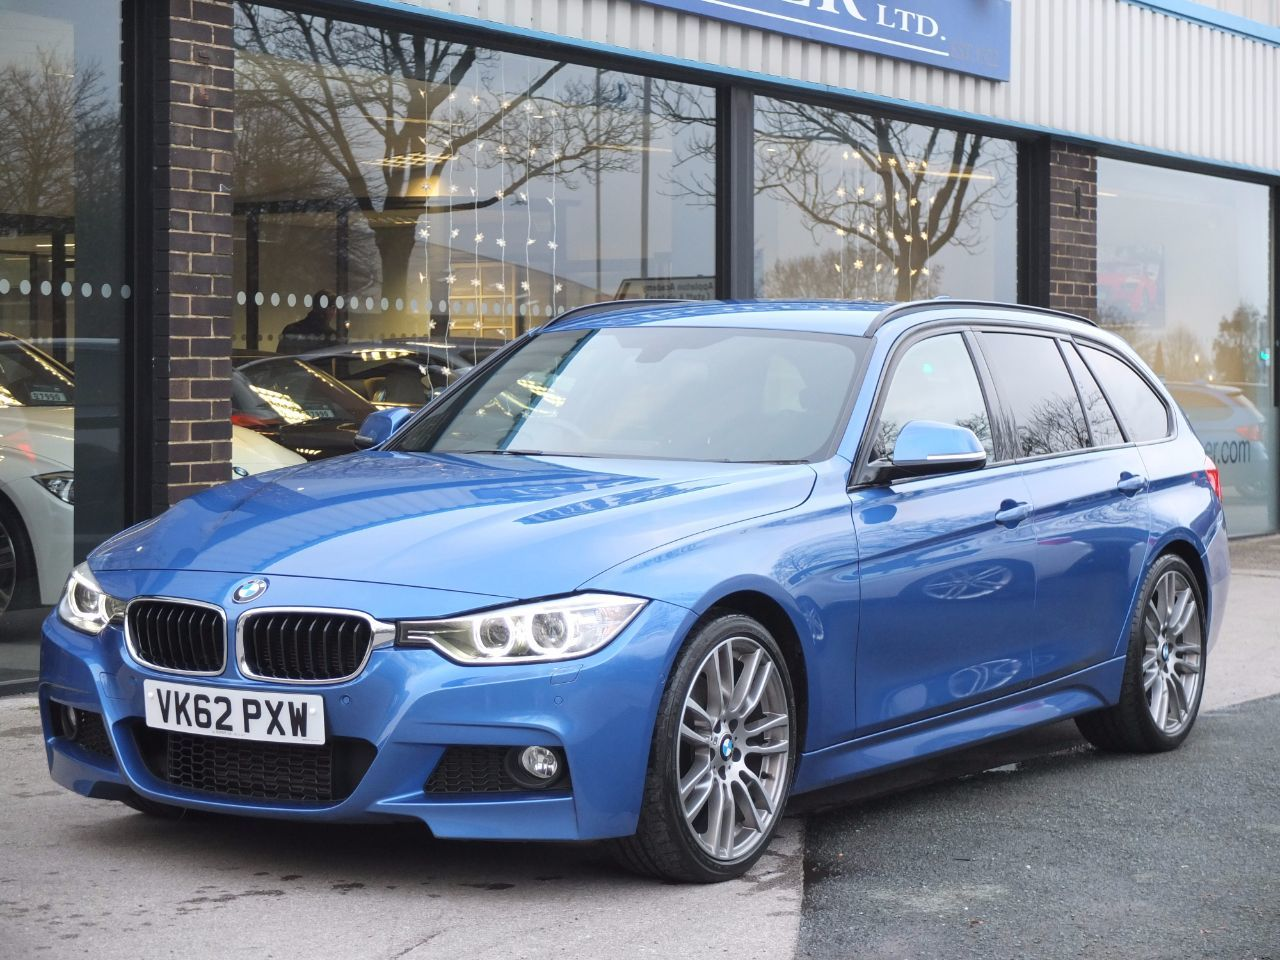 BMW 3 Series 3.0 330d M Sport Touring Auto +++Spec Estate Diesel Estoril Blue MetallicBMW 3 Series 3.0 330d M Sport Touring Auto +++Spec Estate Diesel Estoril Blue Metallic at fa Roper Ltd Bradford